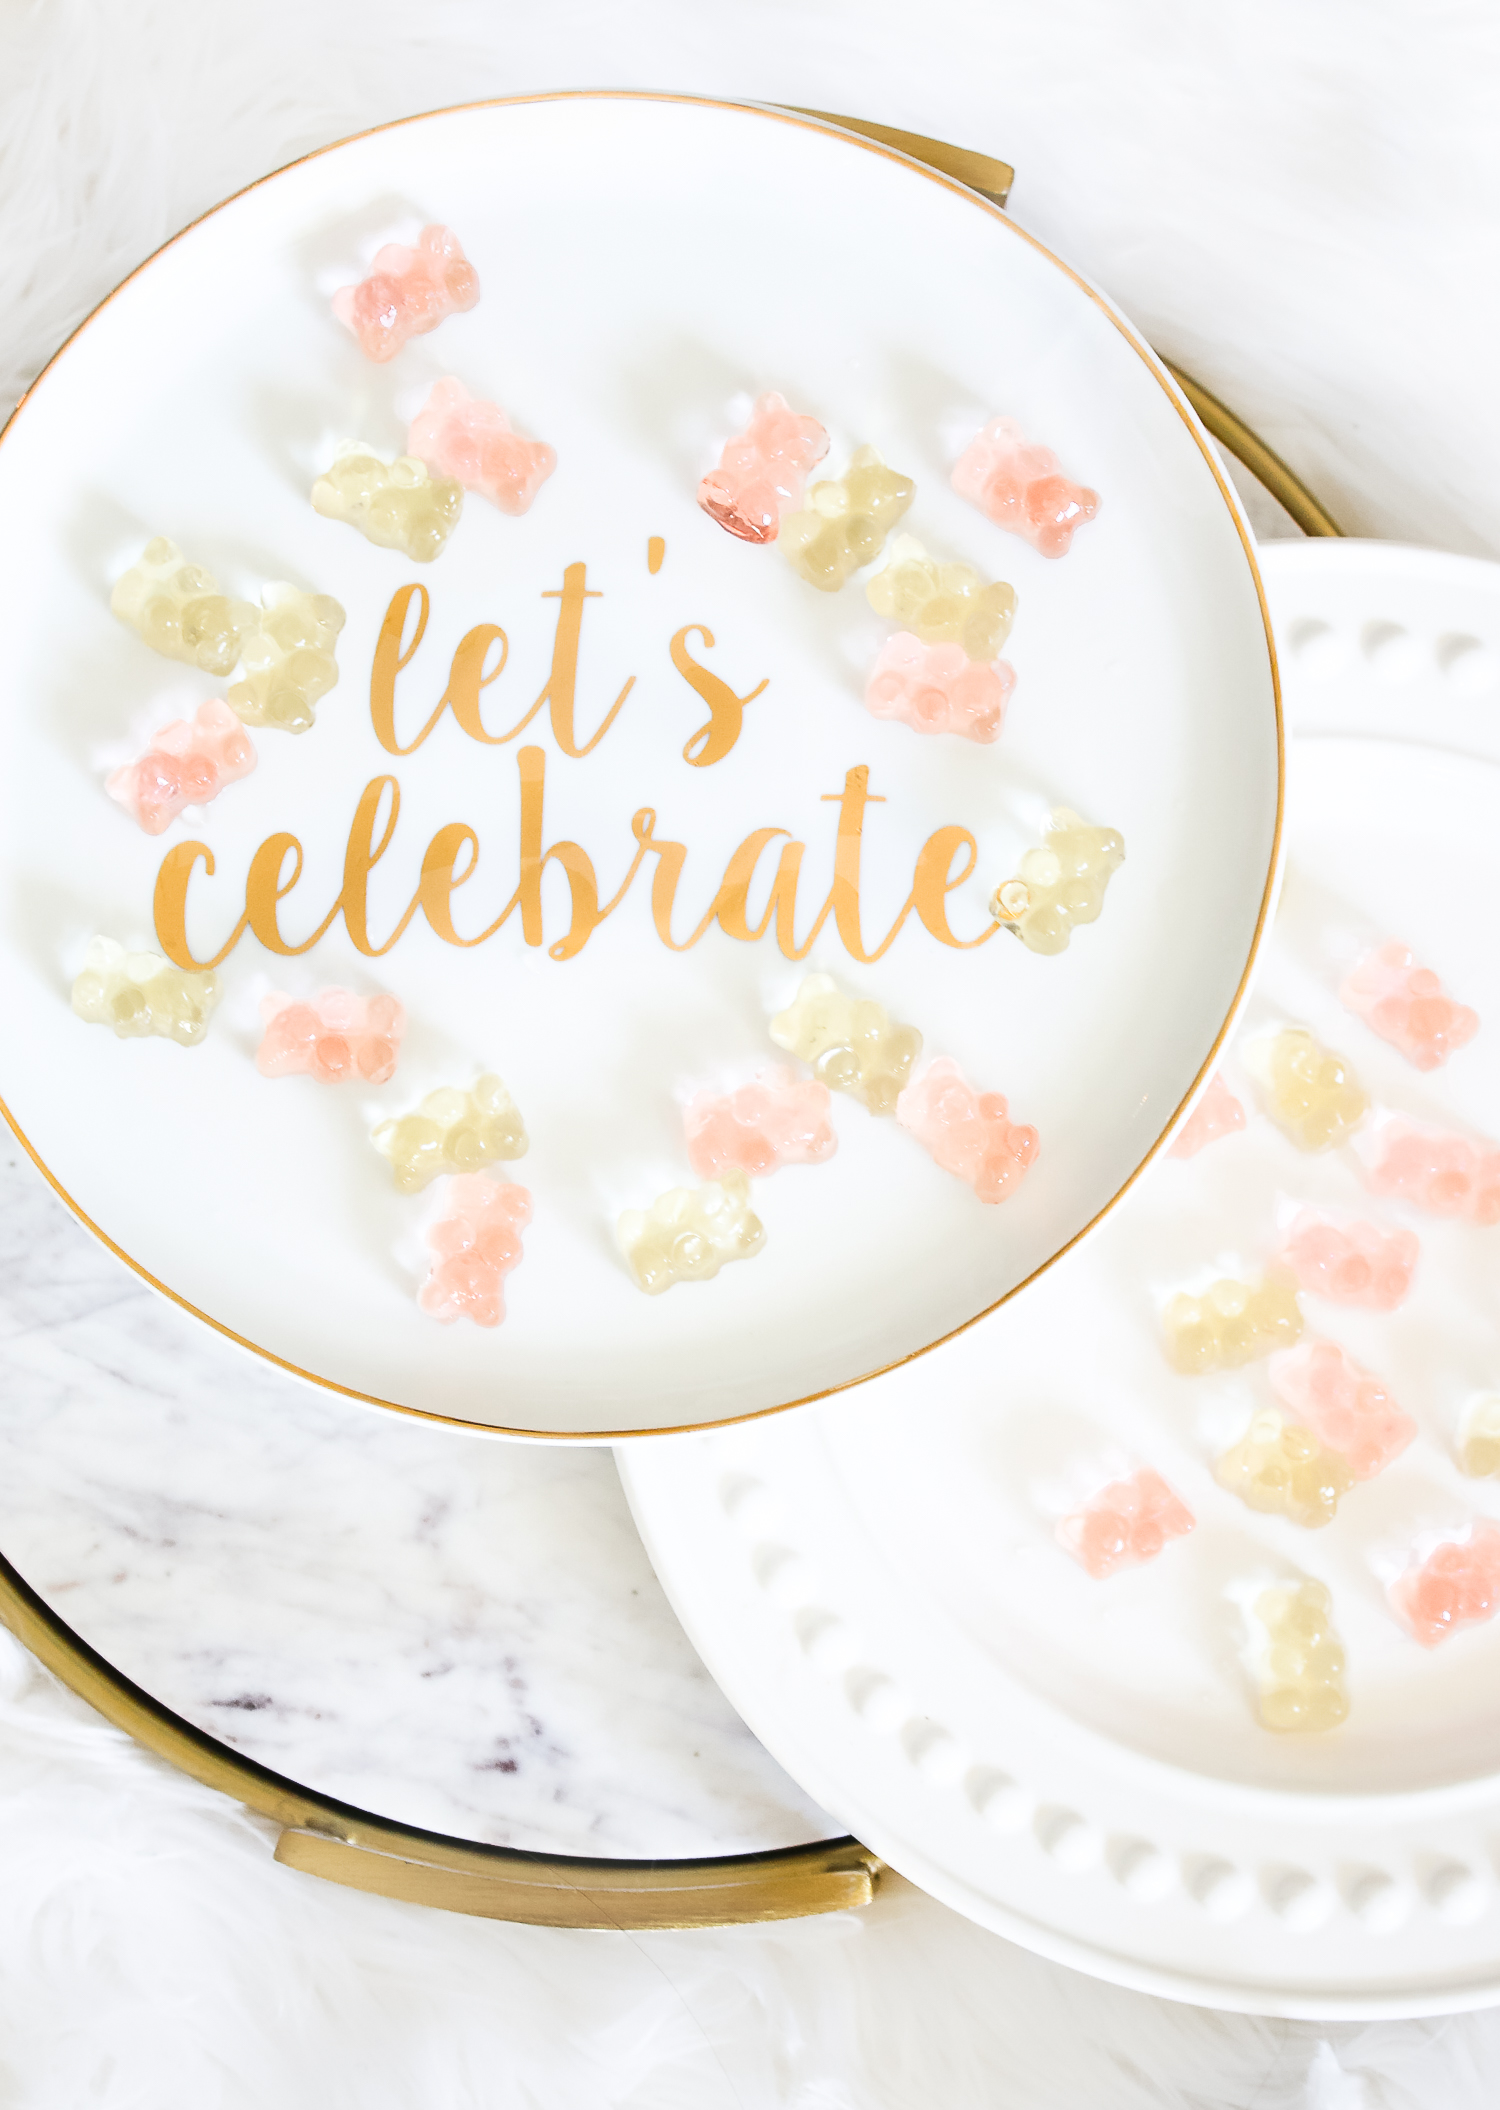 How to make champagne gummy bears by southern lifestyle blogger Stephanie Ziajka from Diary of a Debutante, easy champagne soaked gummy bears recipe using Sugarfina Champagne Bears Gummy Candy, ceramic Let's Celebrate cake stand